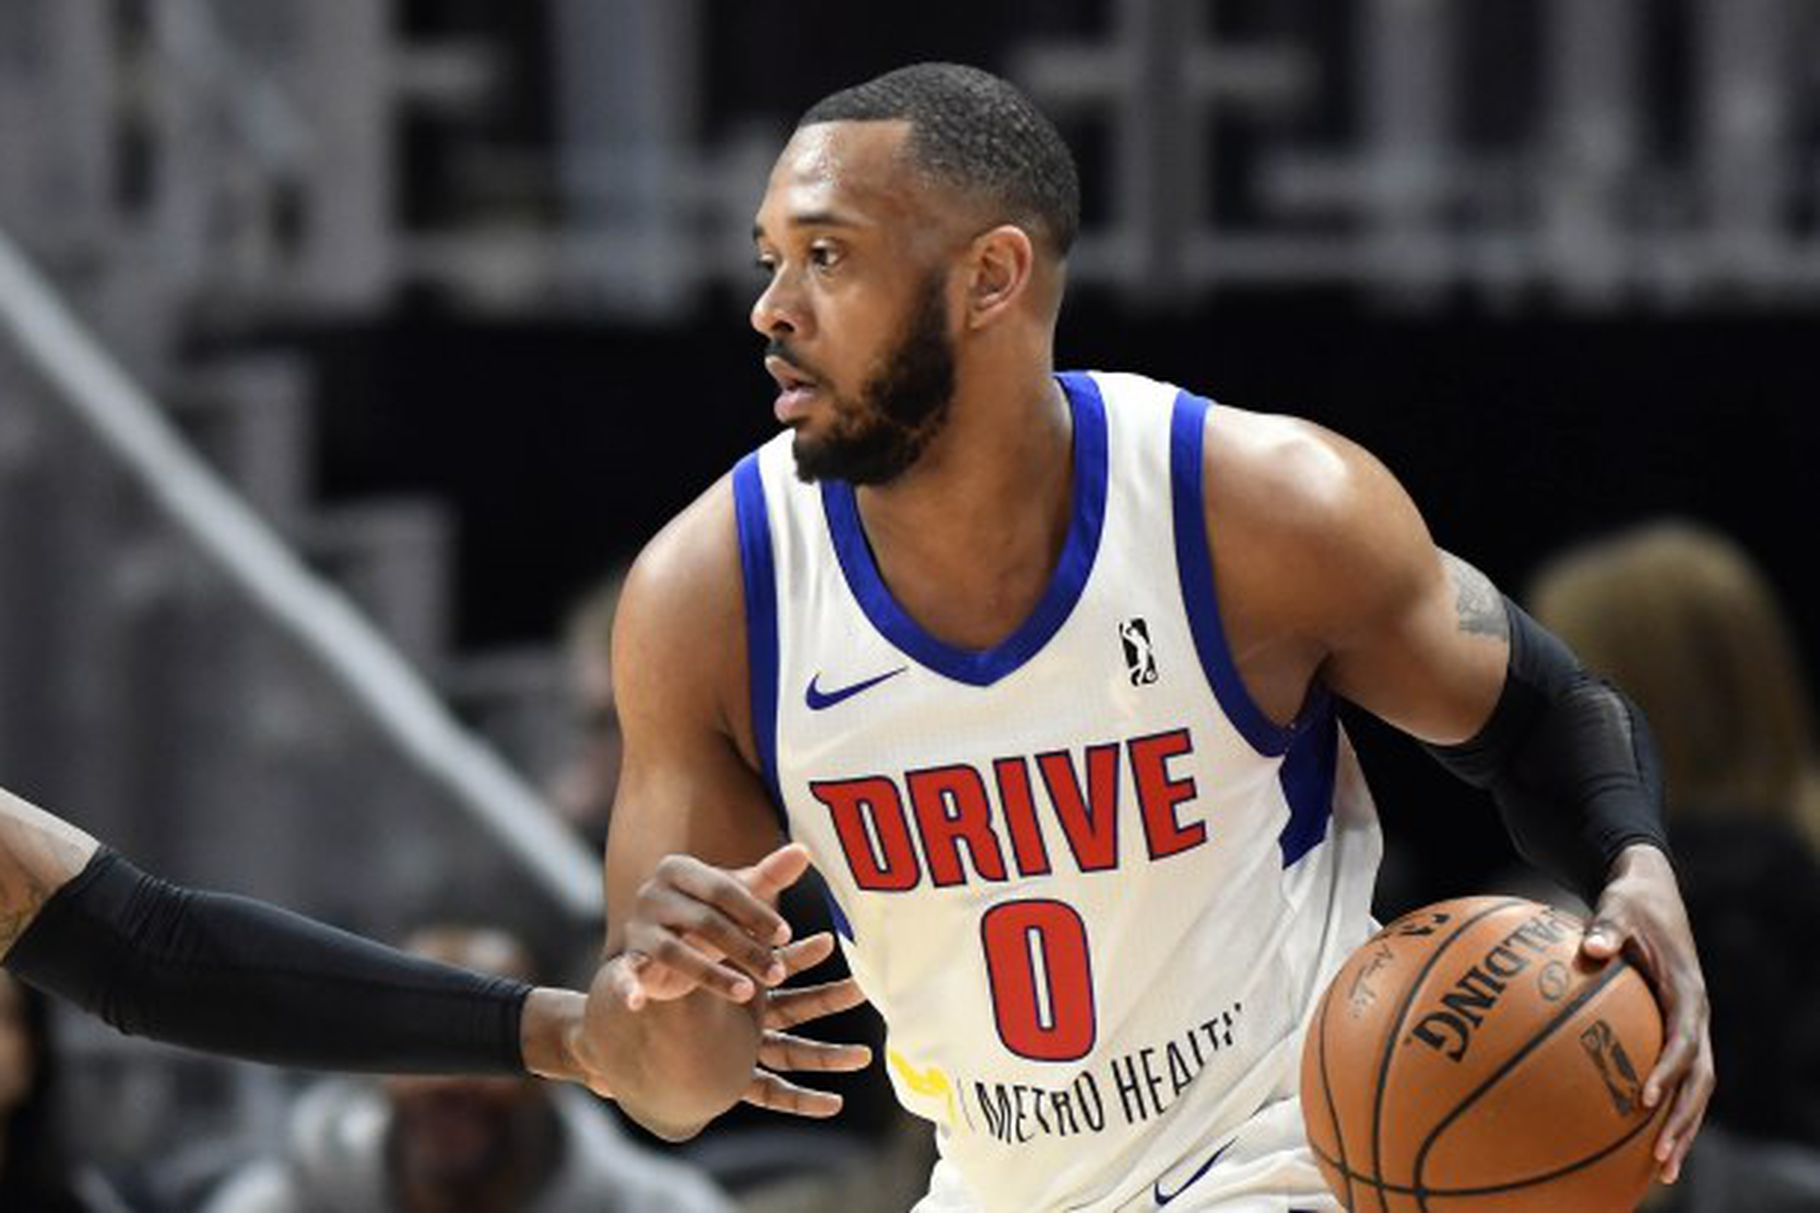 Zeke Upshaw playing for the Grand Rapids Drive